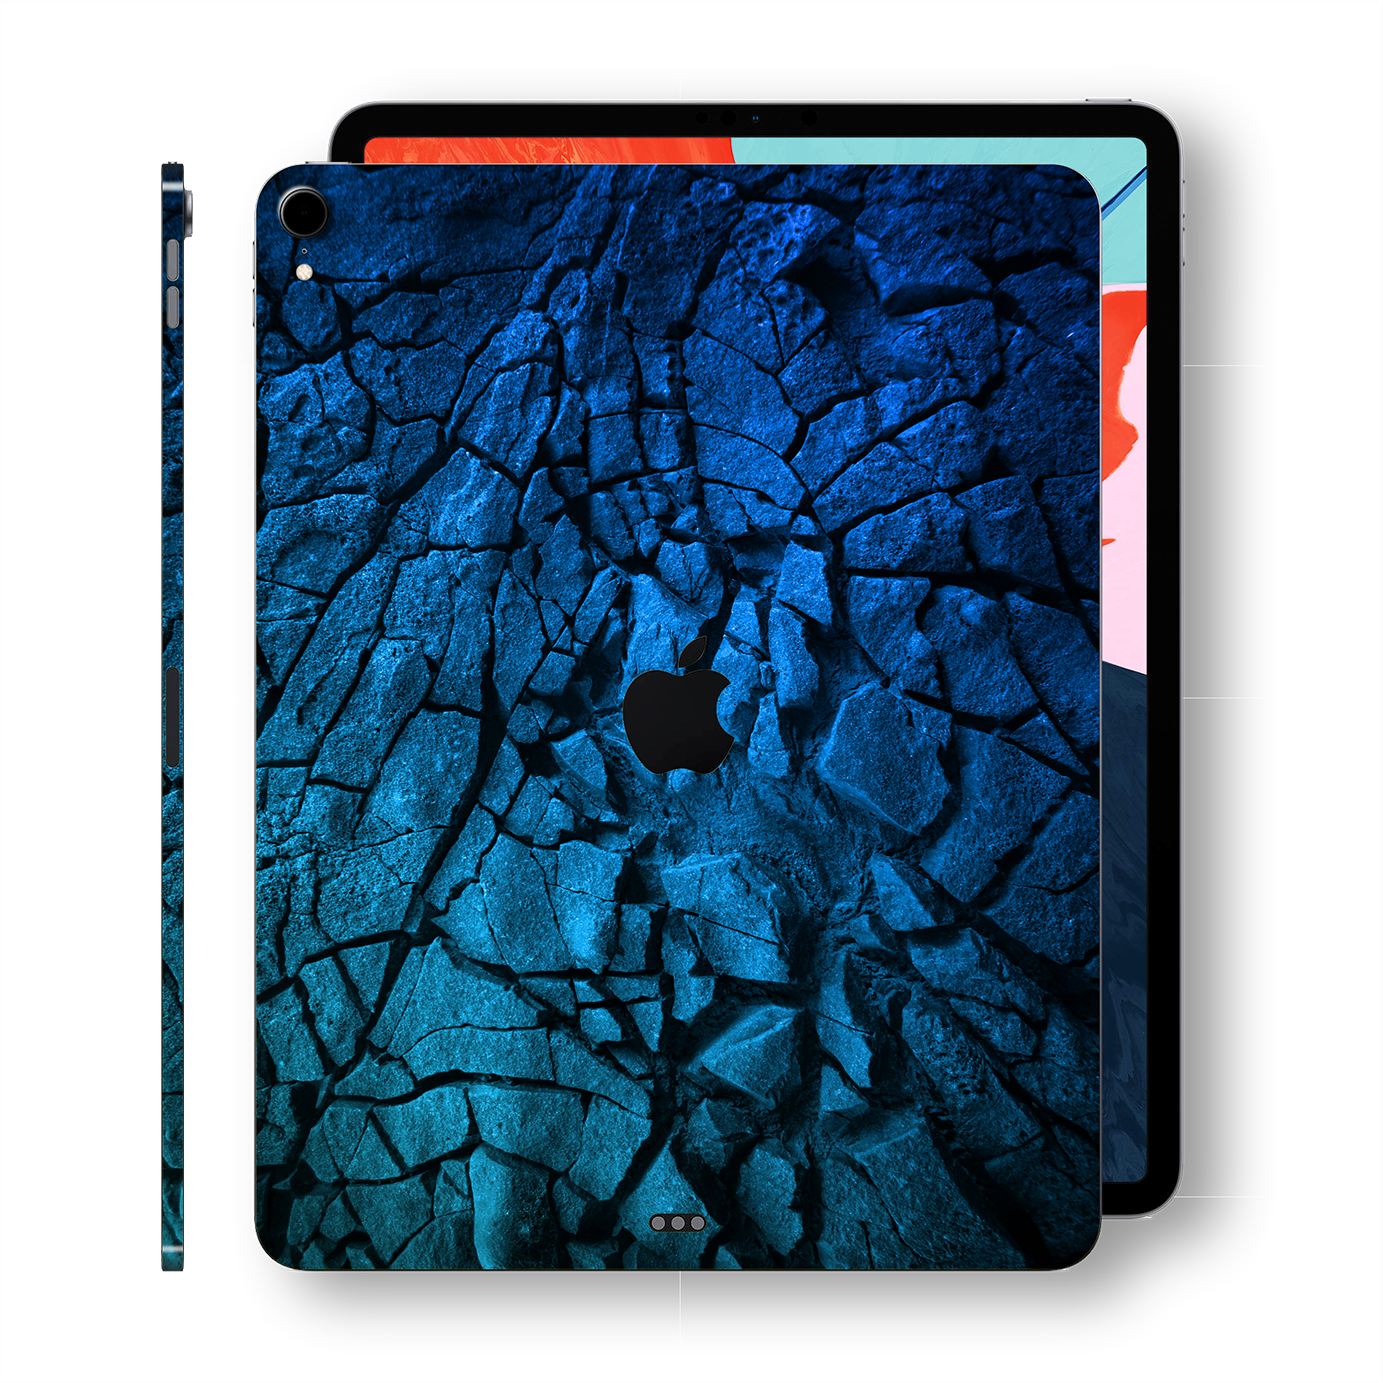 "iPad PRO 11"" inch 2018 Signature Charcoal BLUE Abstract Printed Skin Wrap Decal Protector 